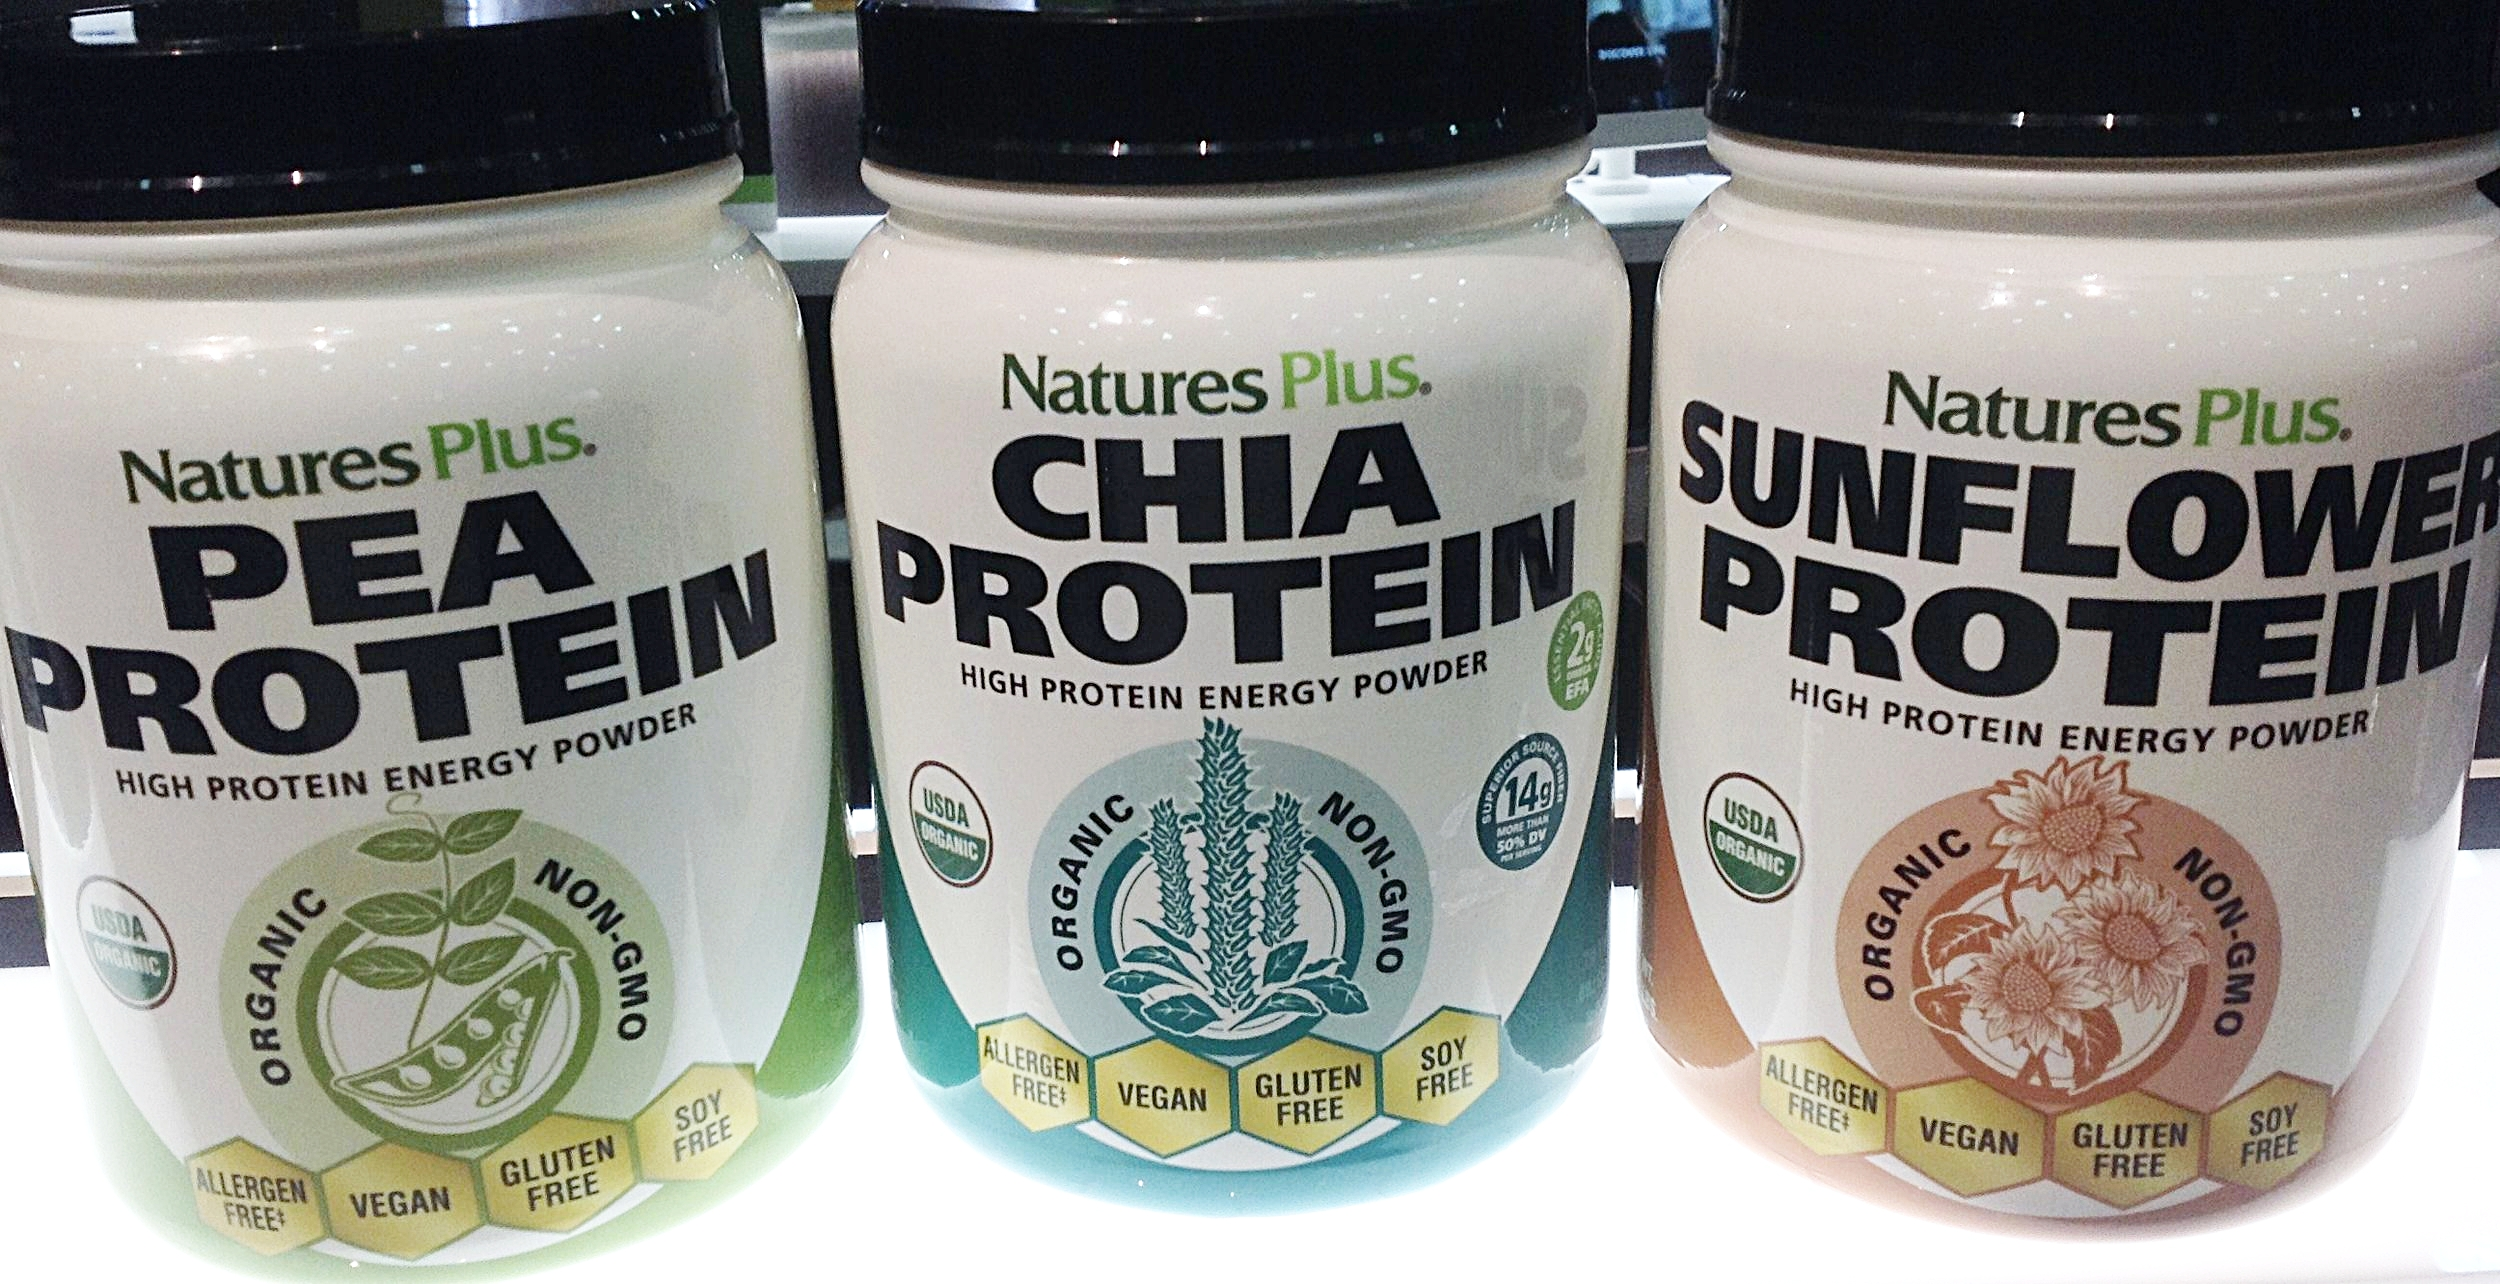 3 New Proteins With Only 3 Ingredients Each!